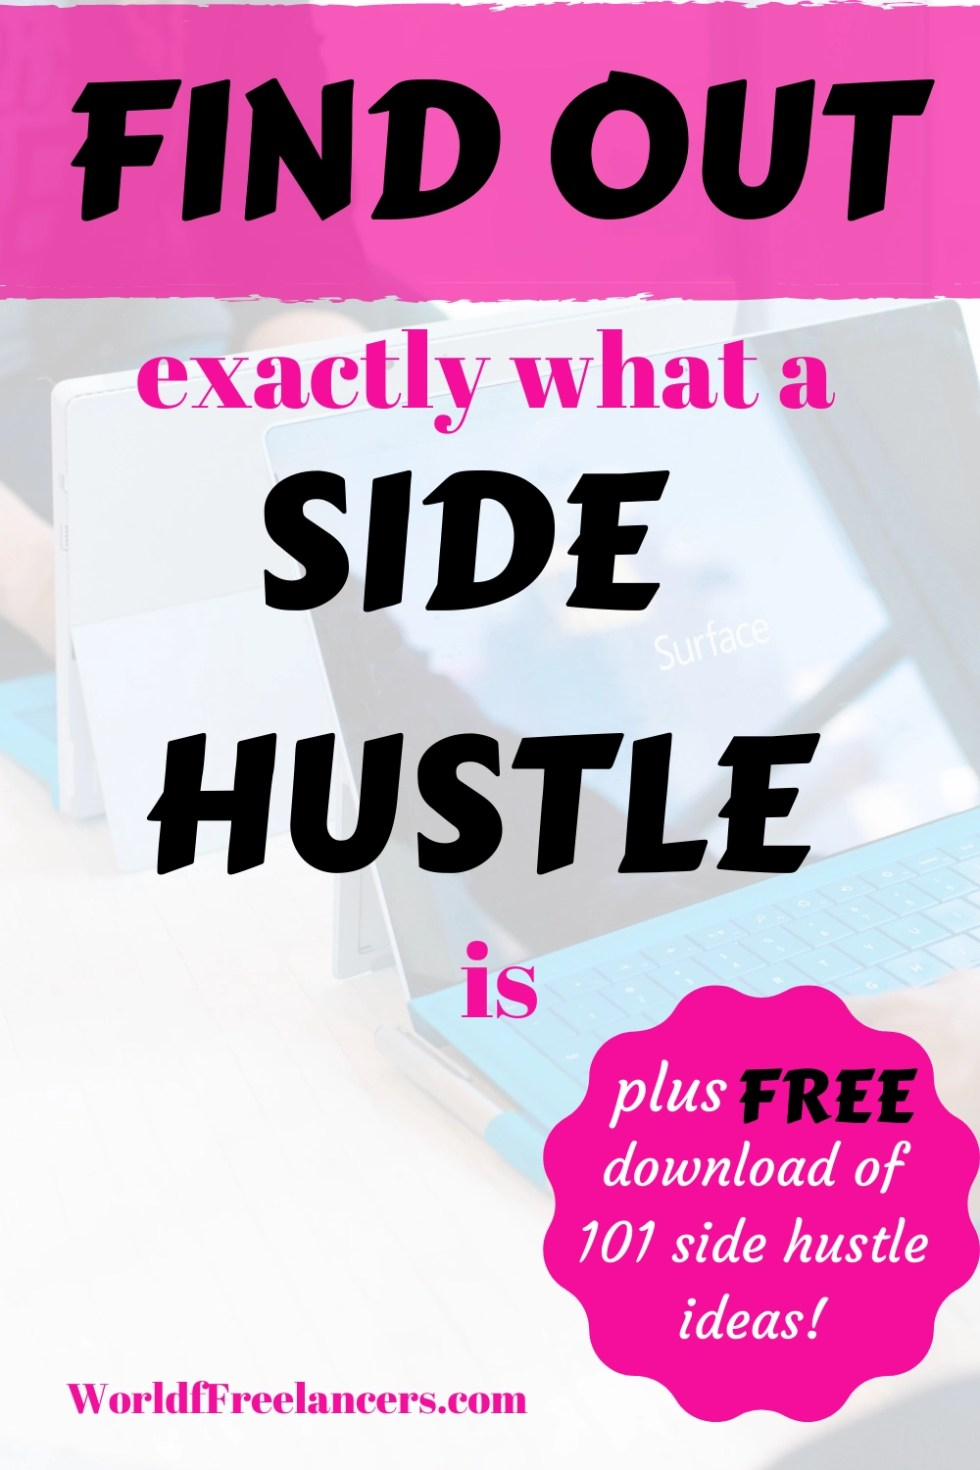 Find Out Exactly What a Side Hustle is - plus get a free download of 101 side hustle ideas